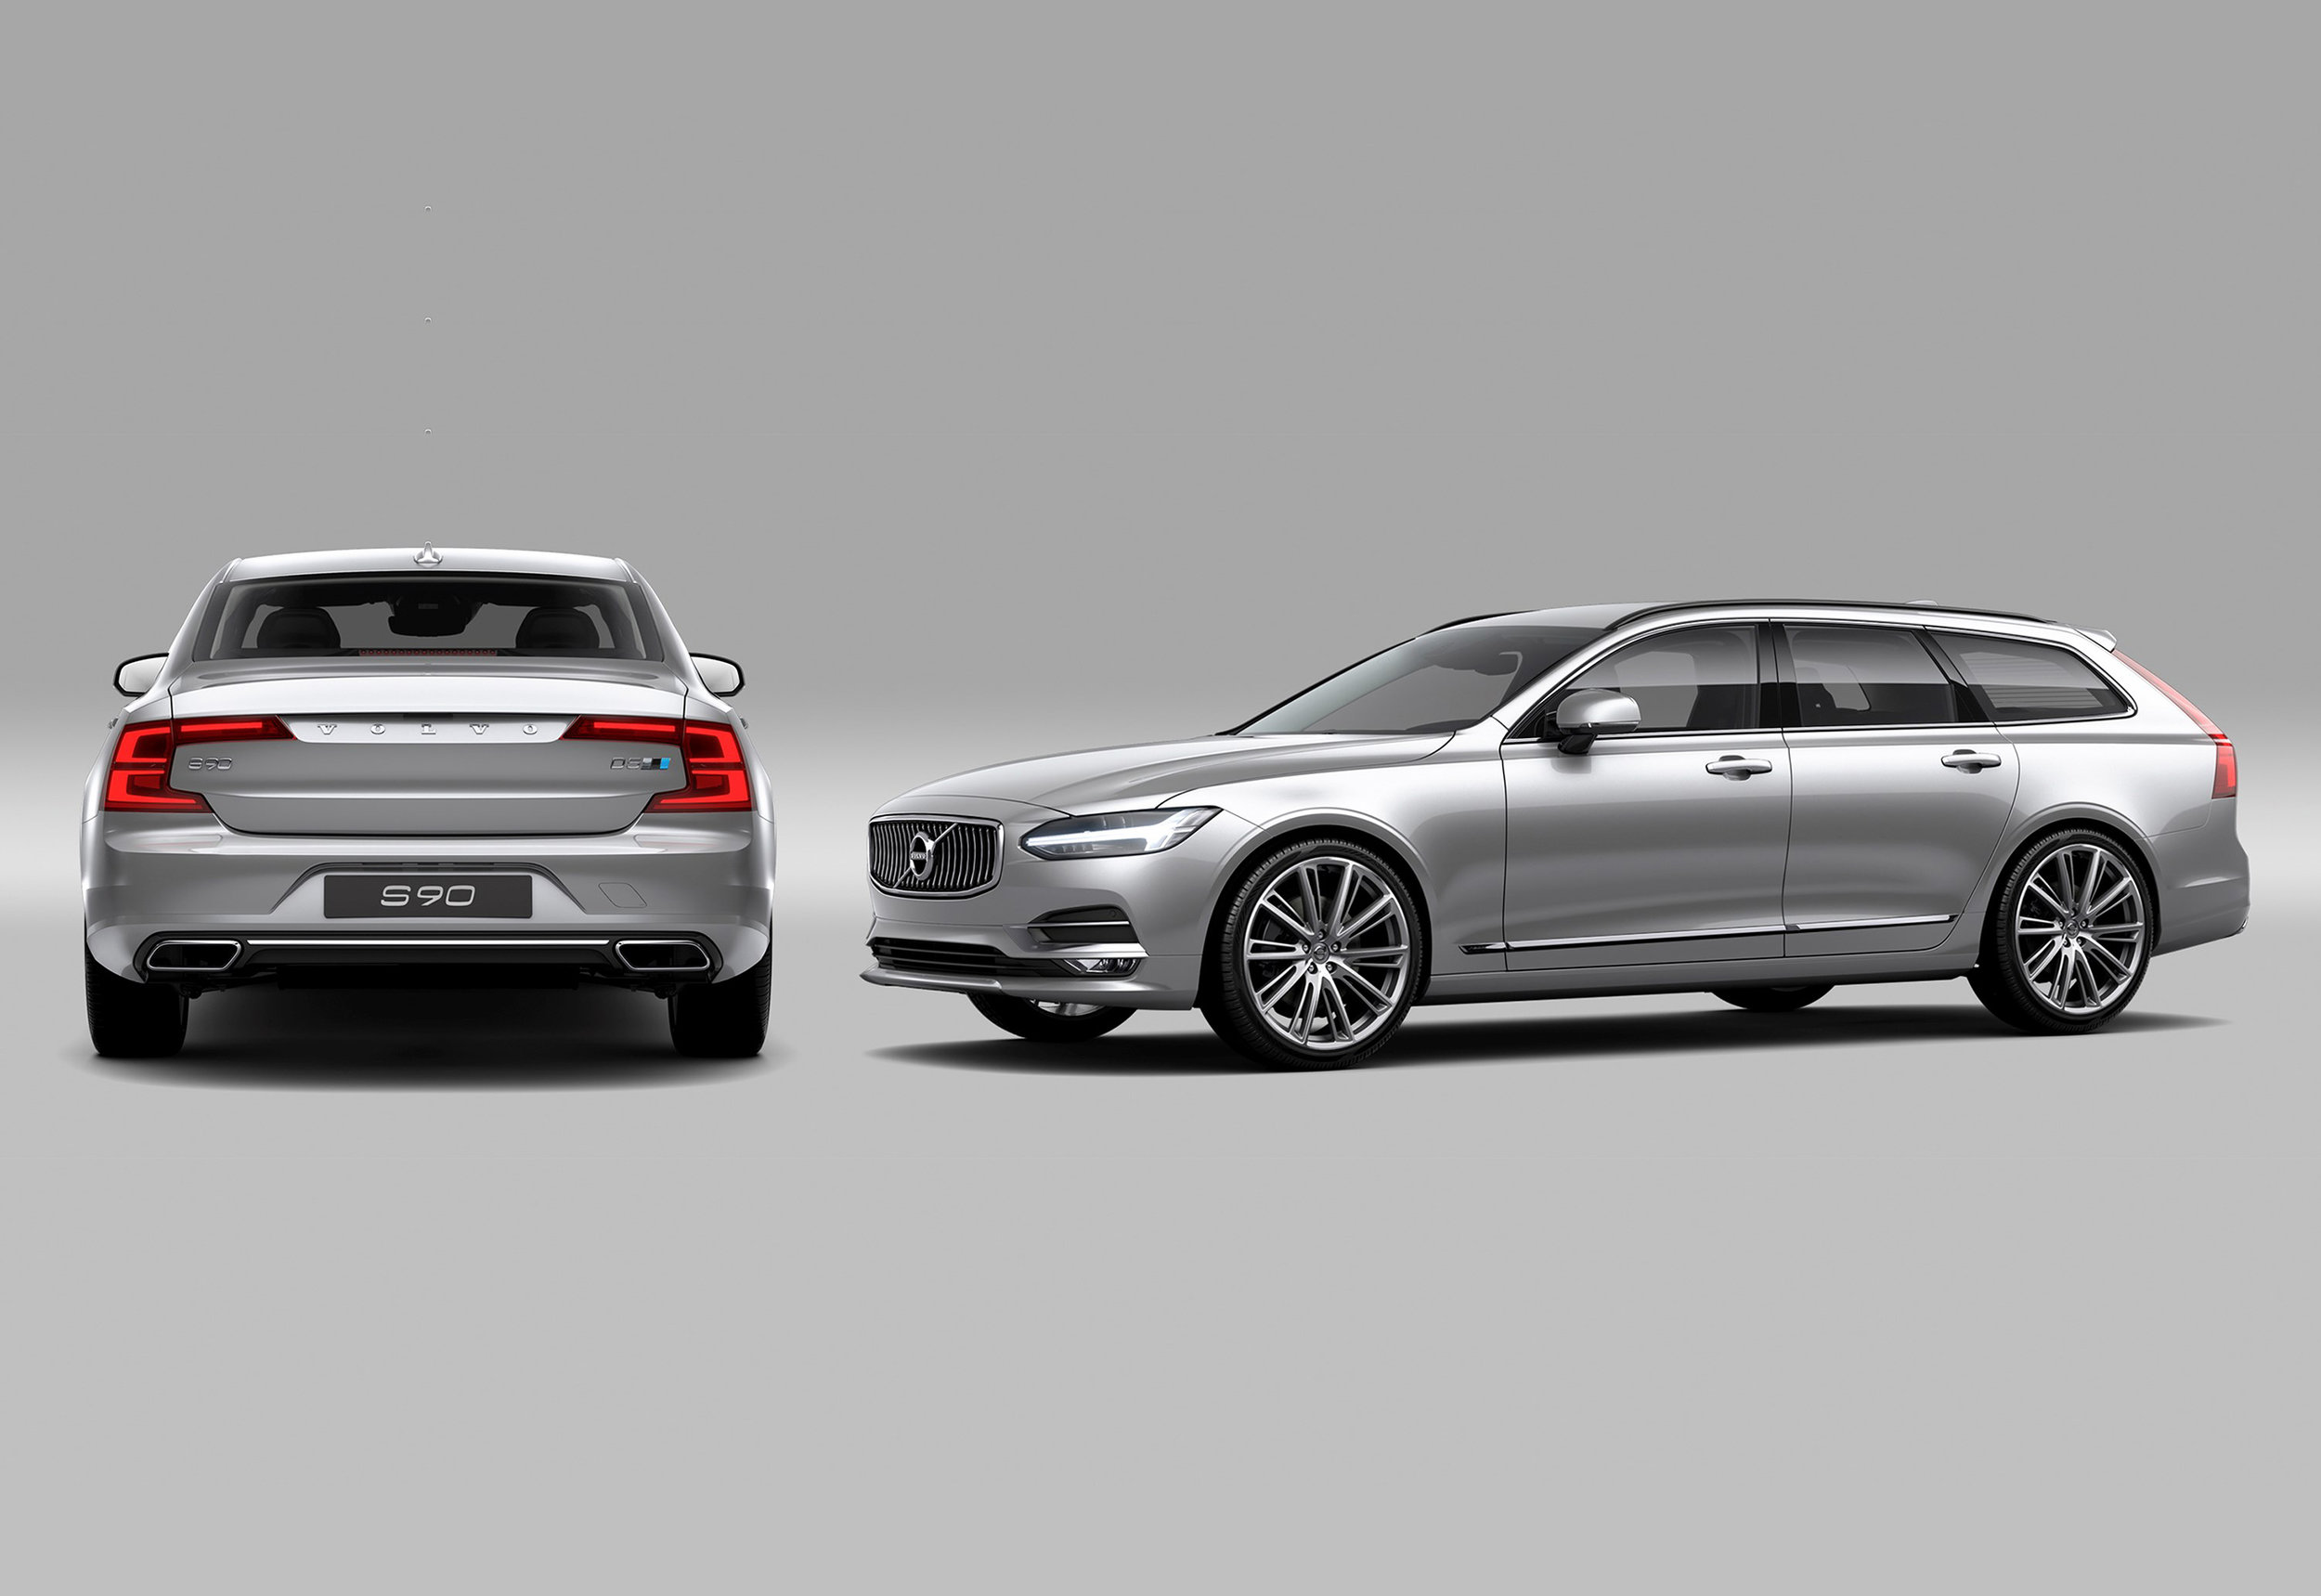 193454_New_Polestar_performance_package_now_available_for_the_Volvo_S90_and_V90.jpg